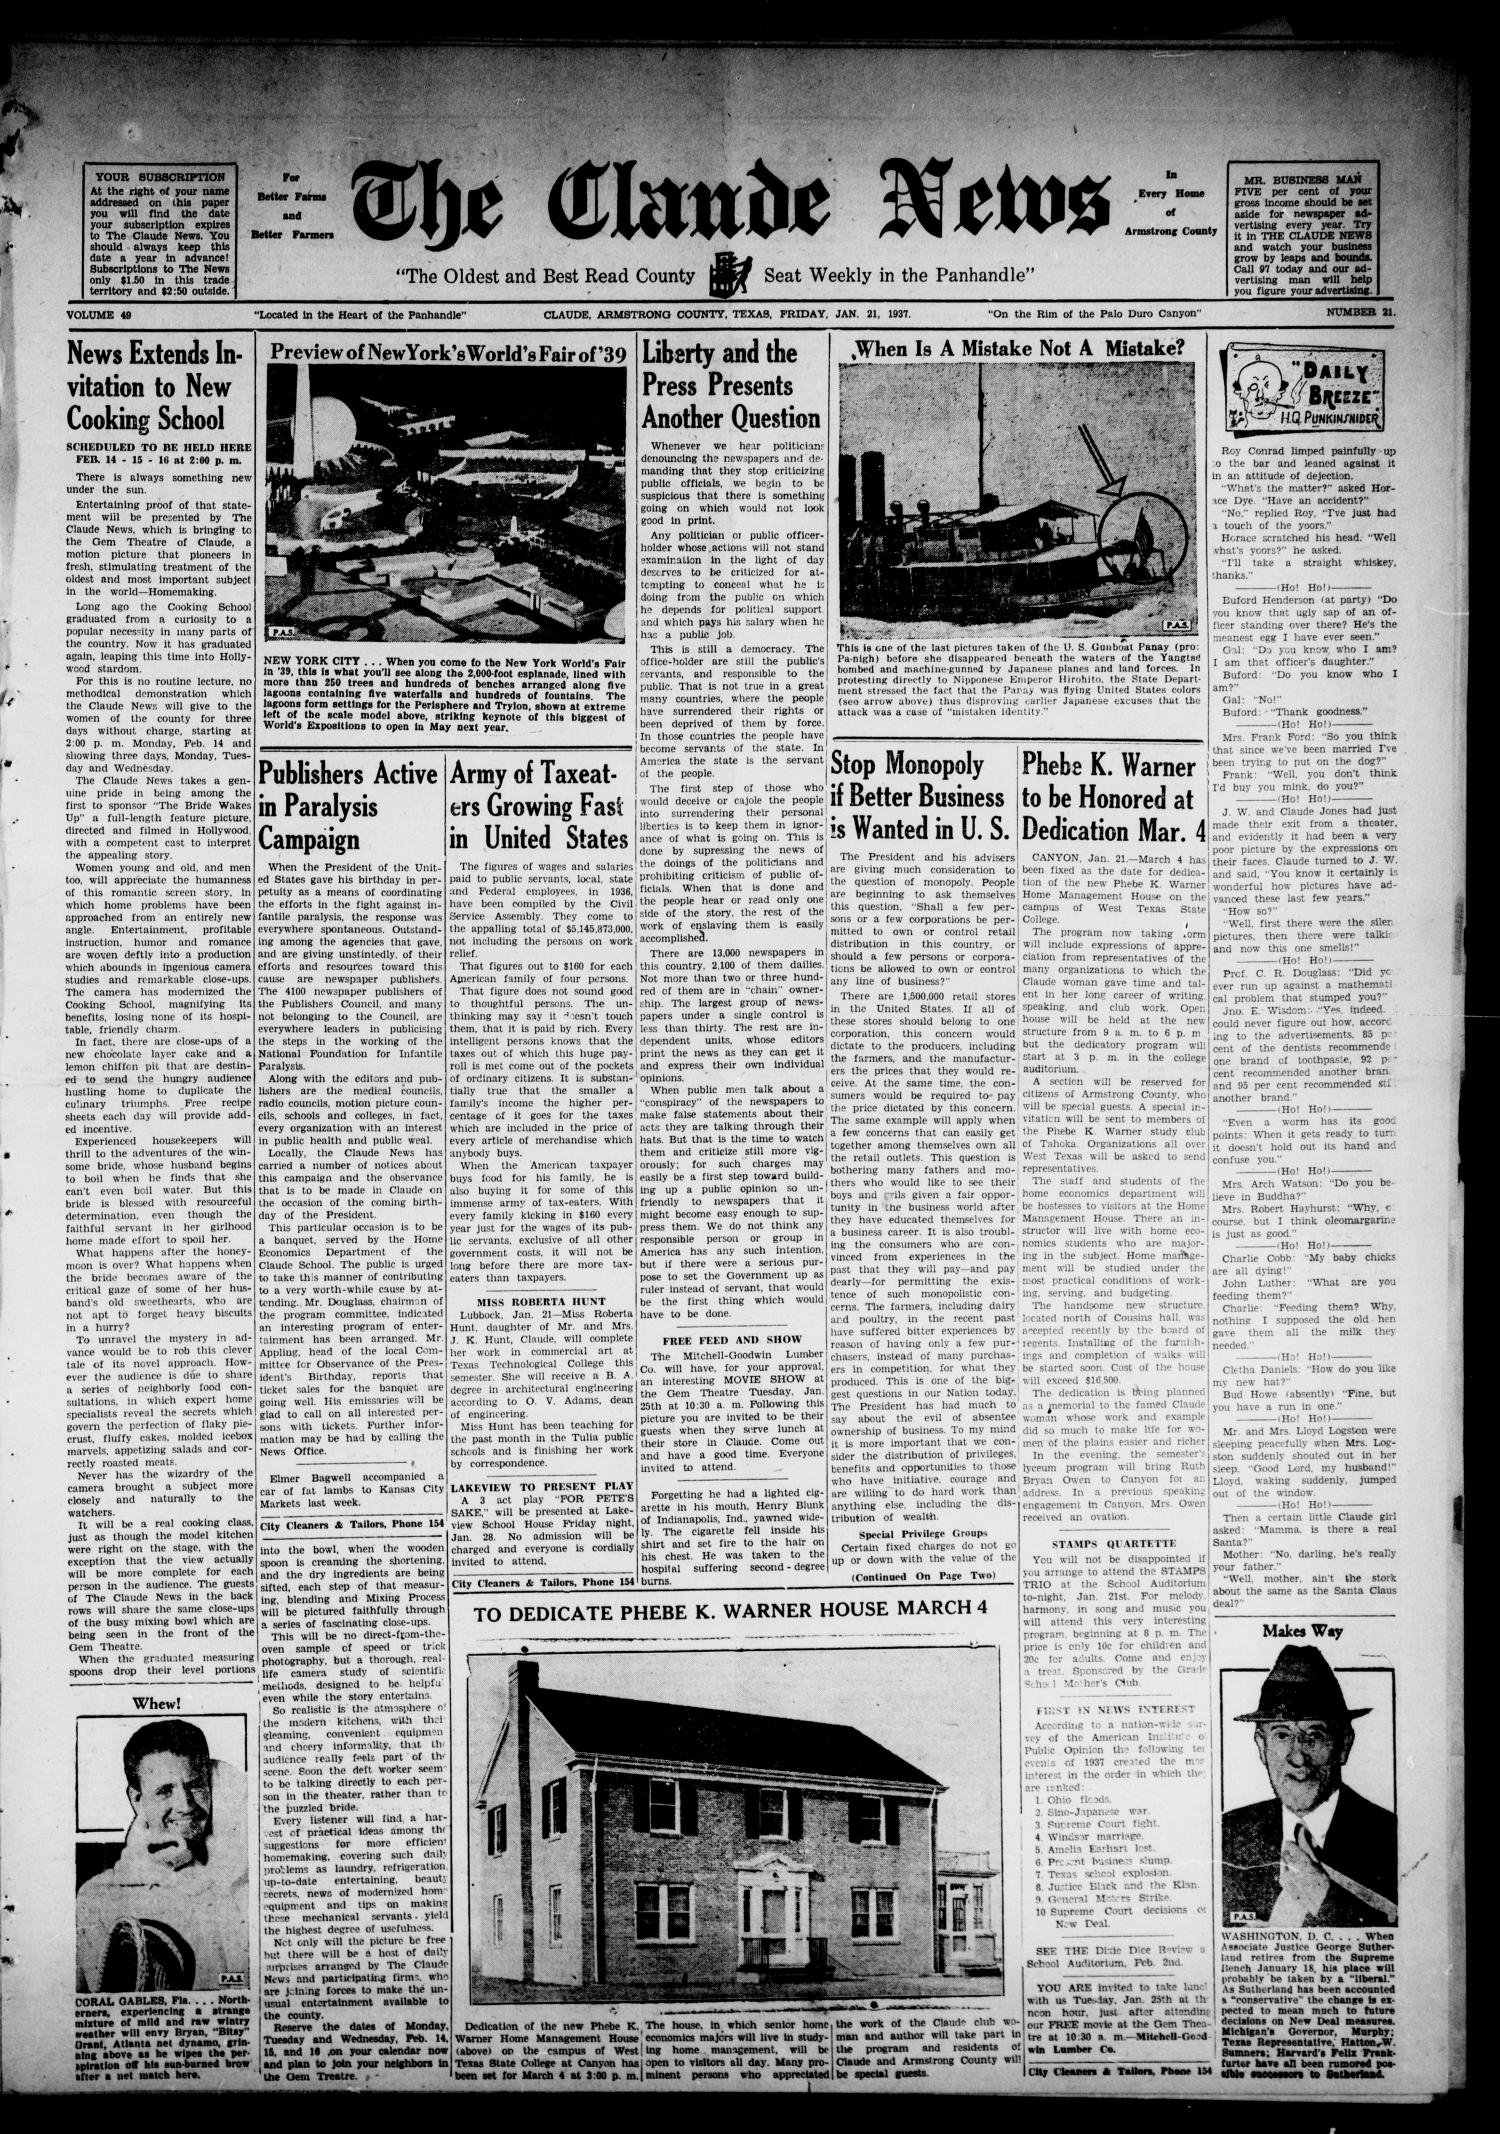 The Claude News (Claude, Tex.), Vol. 49, No. 21, Ed. 1 Friday, January 21, 1938                                                                                                      [Sequence #]: 1 of 4